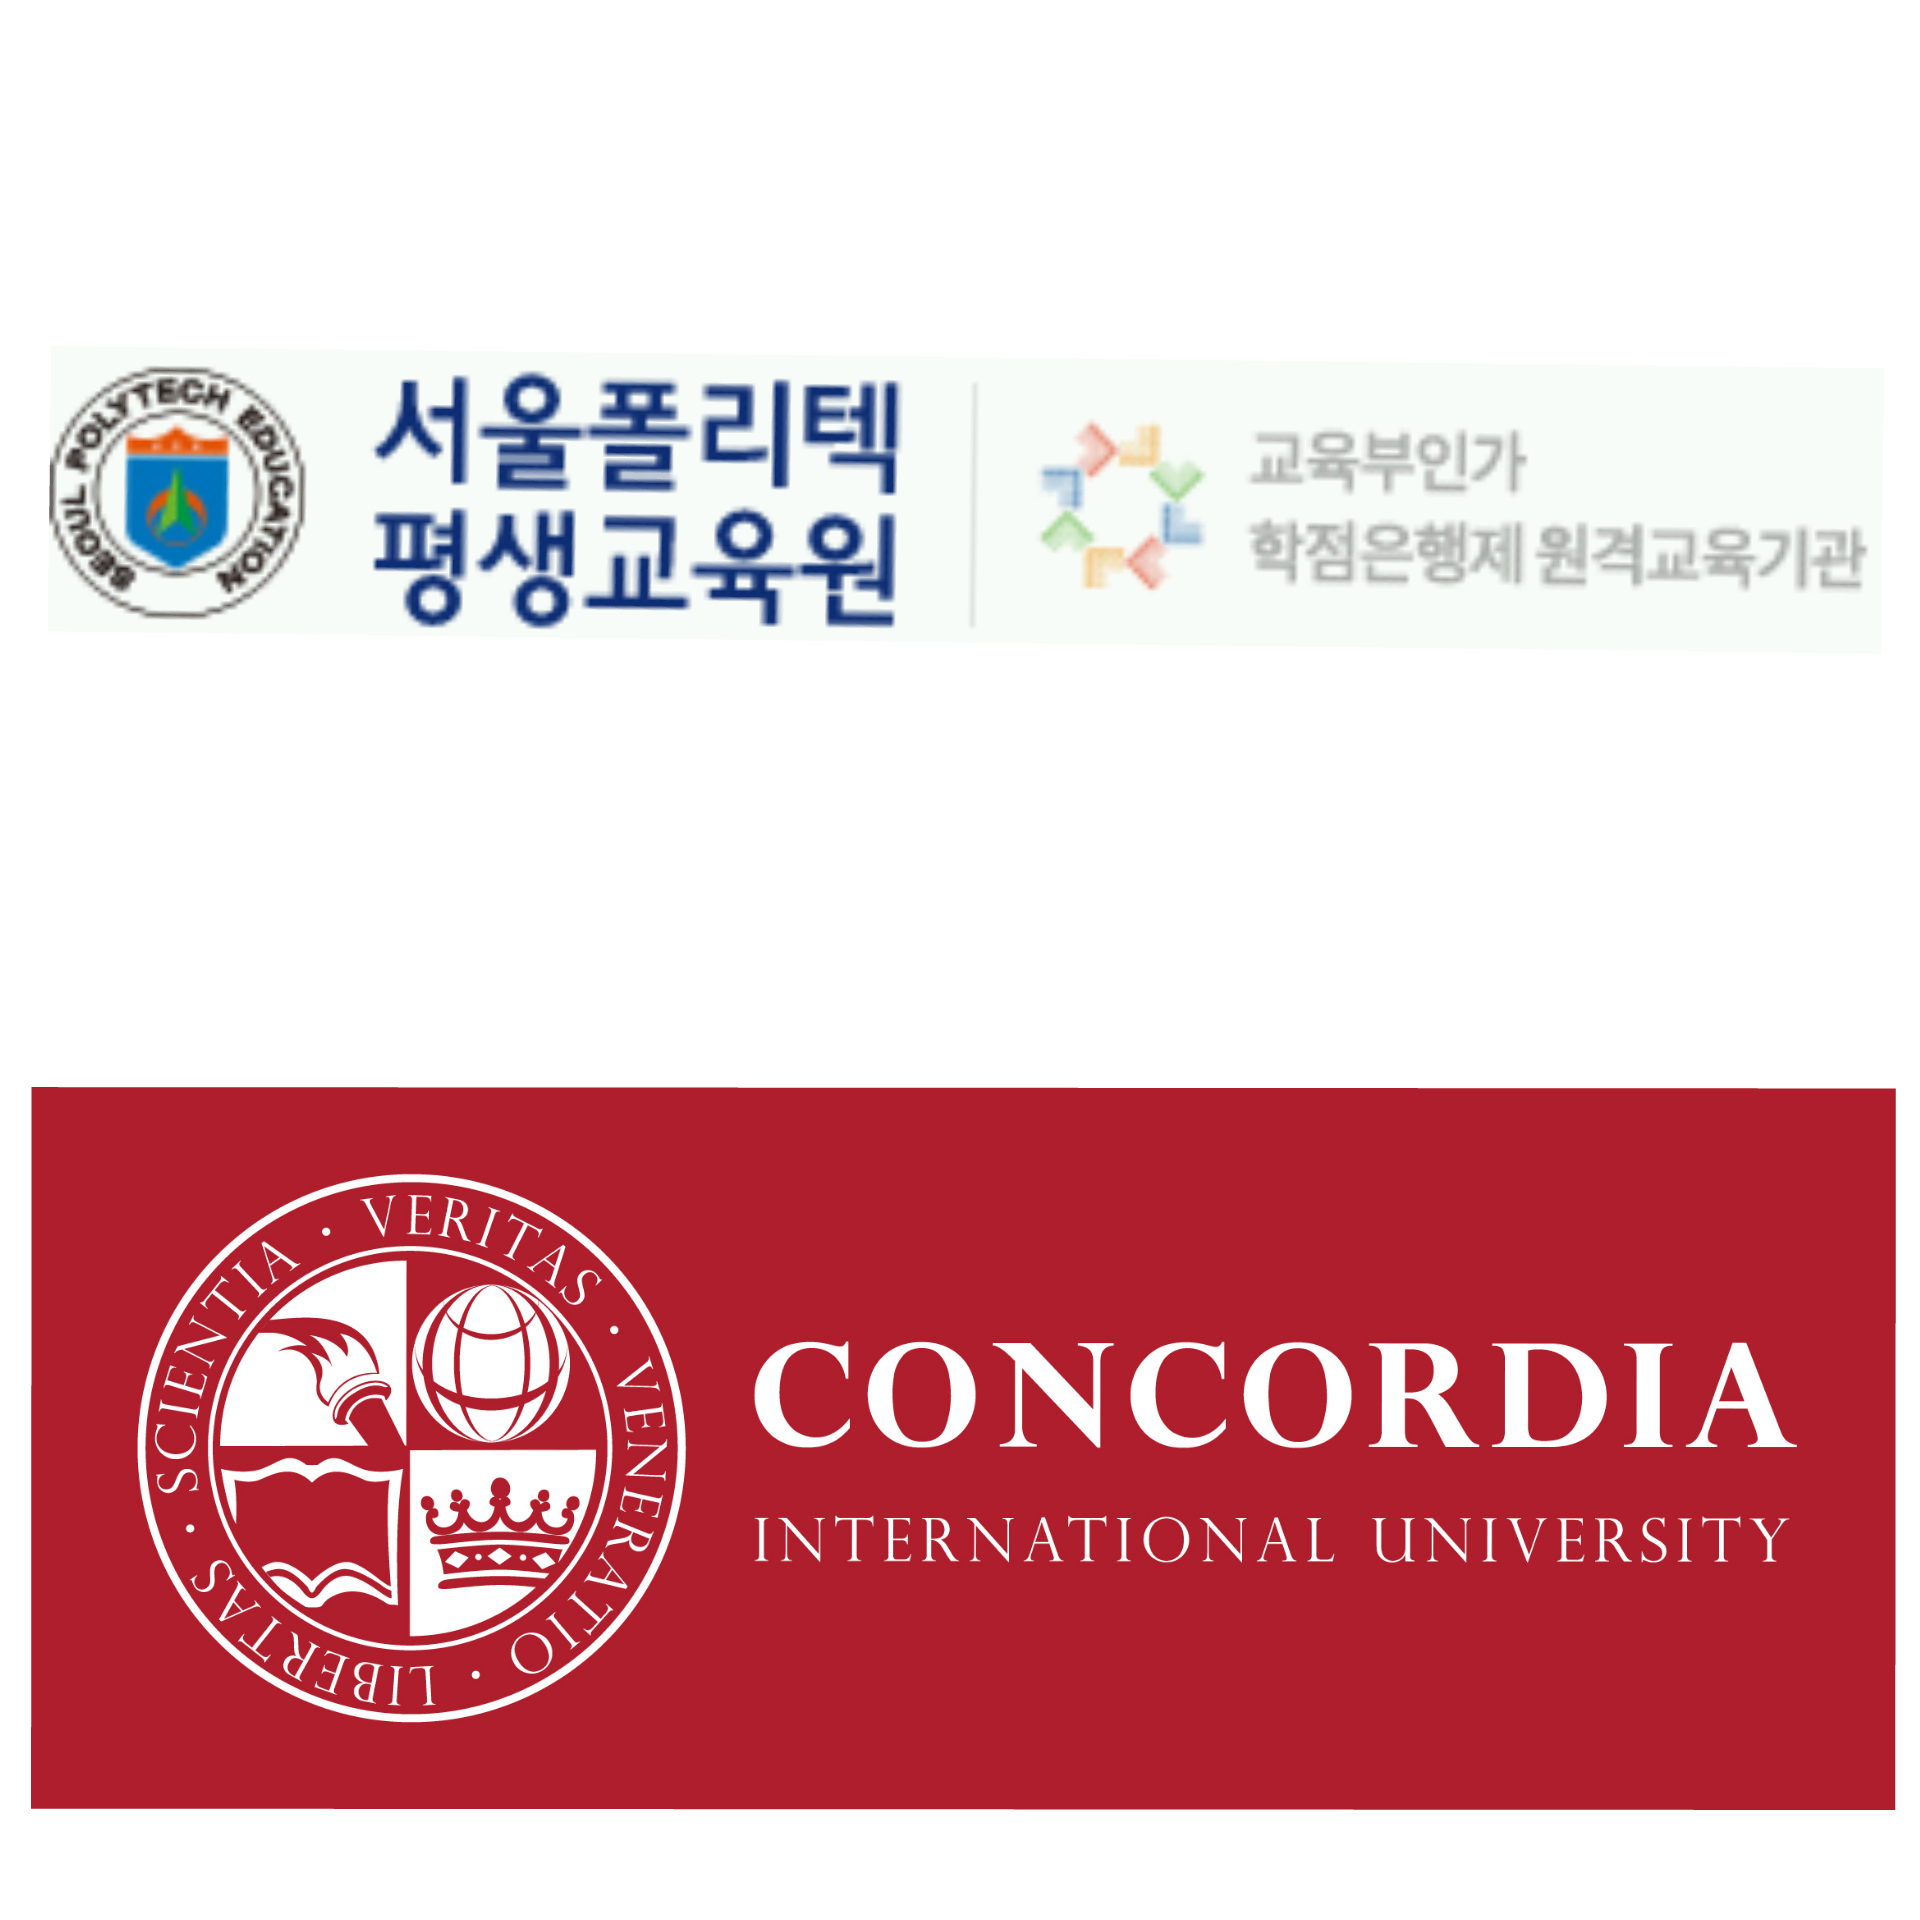 Cconcordia > News & Notice > Seoul Polytech Education signs MOU with